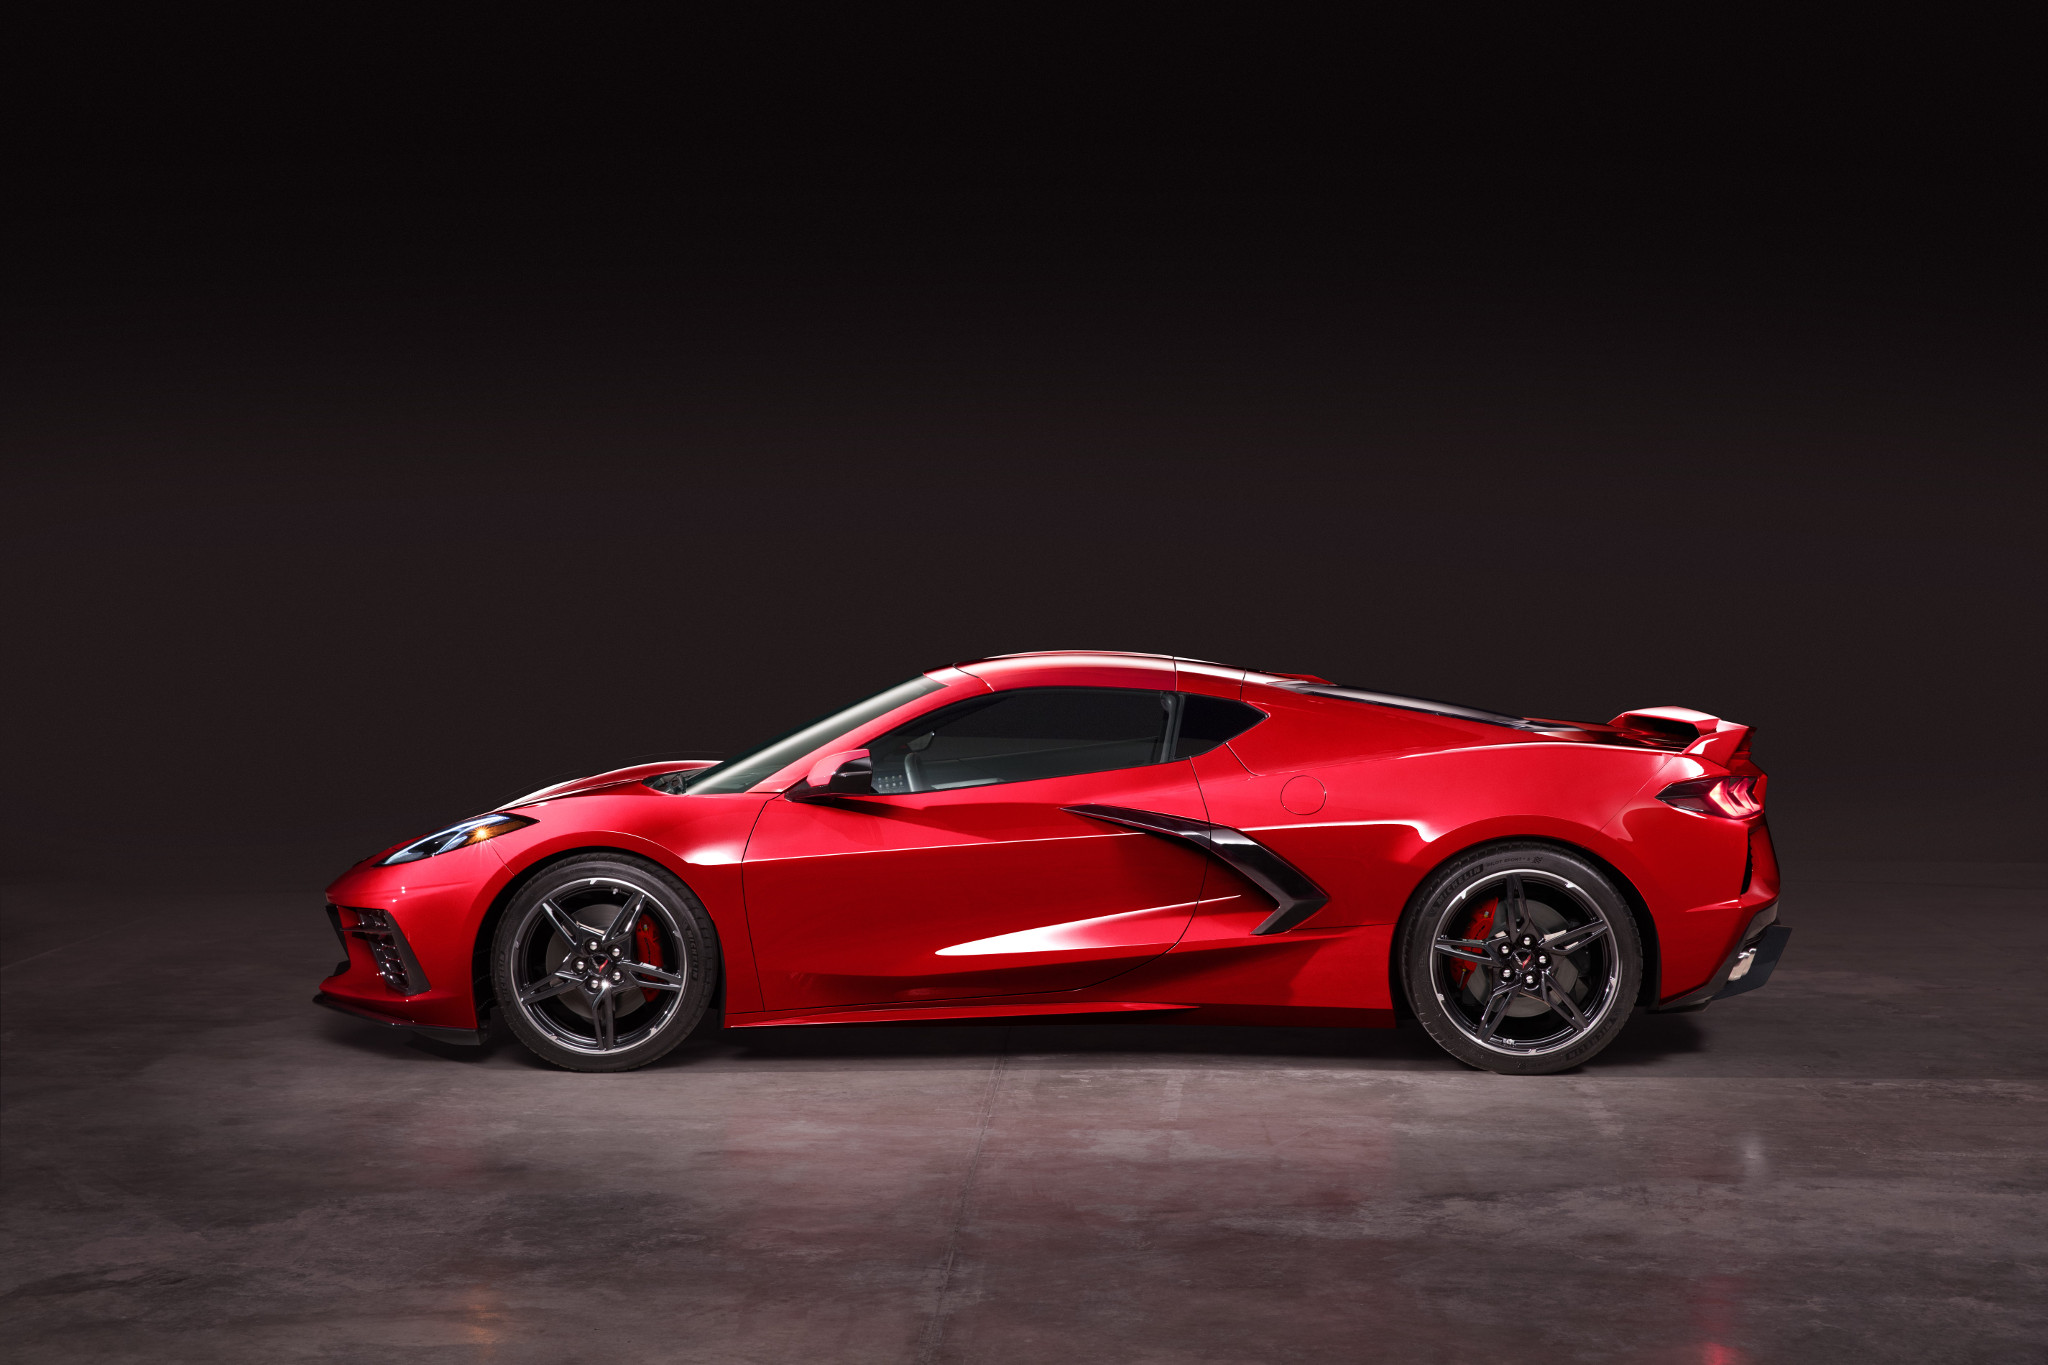 chevrolet-corvette-stingray-2020-04-exterior--profile--red.jpg